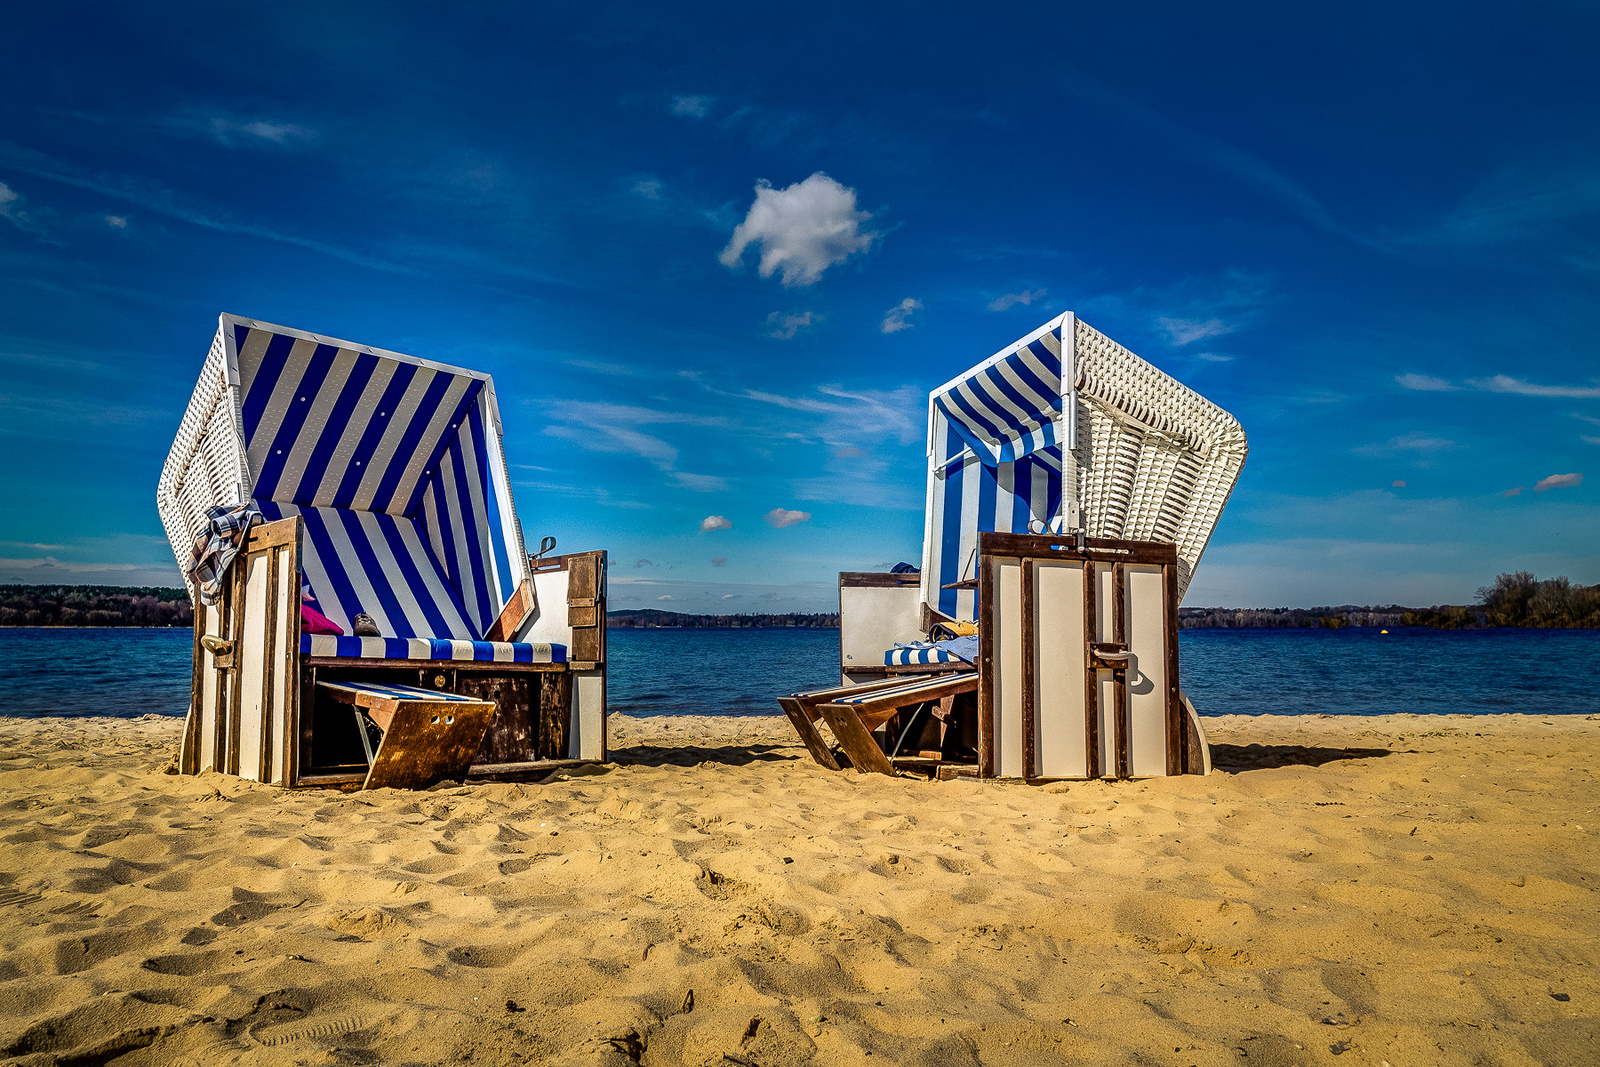 Badeferie i Berlin i Wannsee